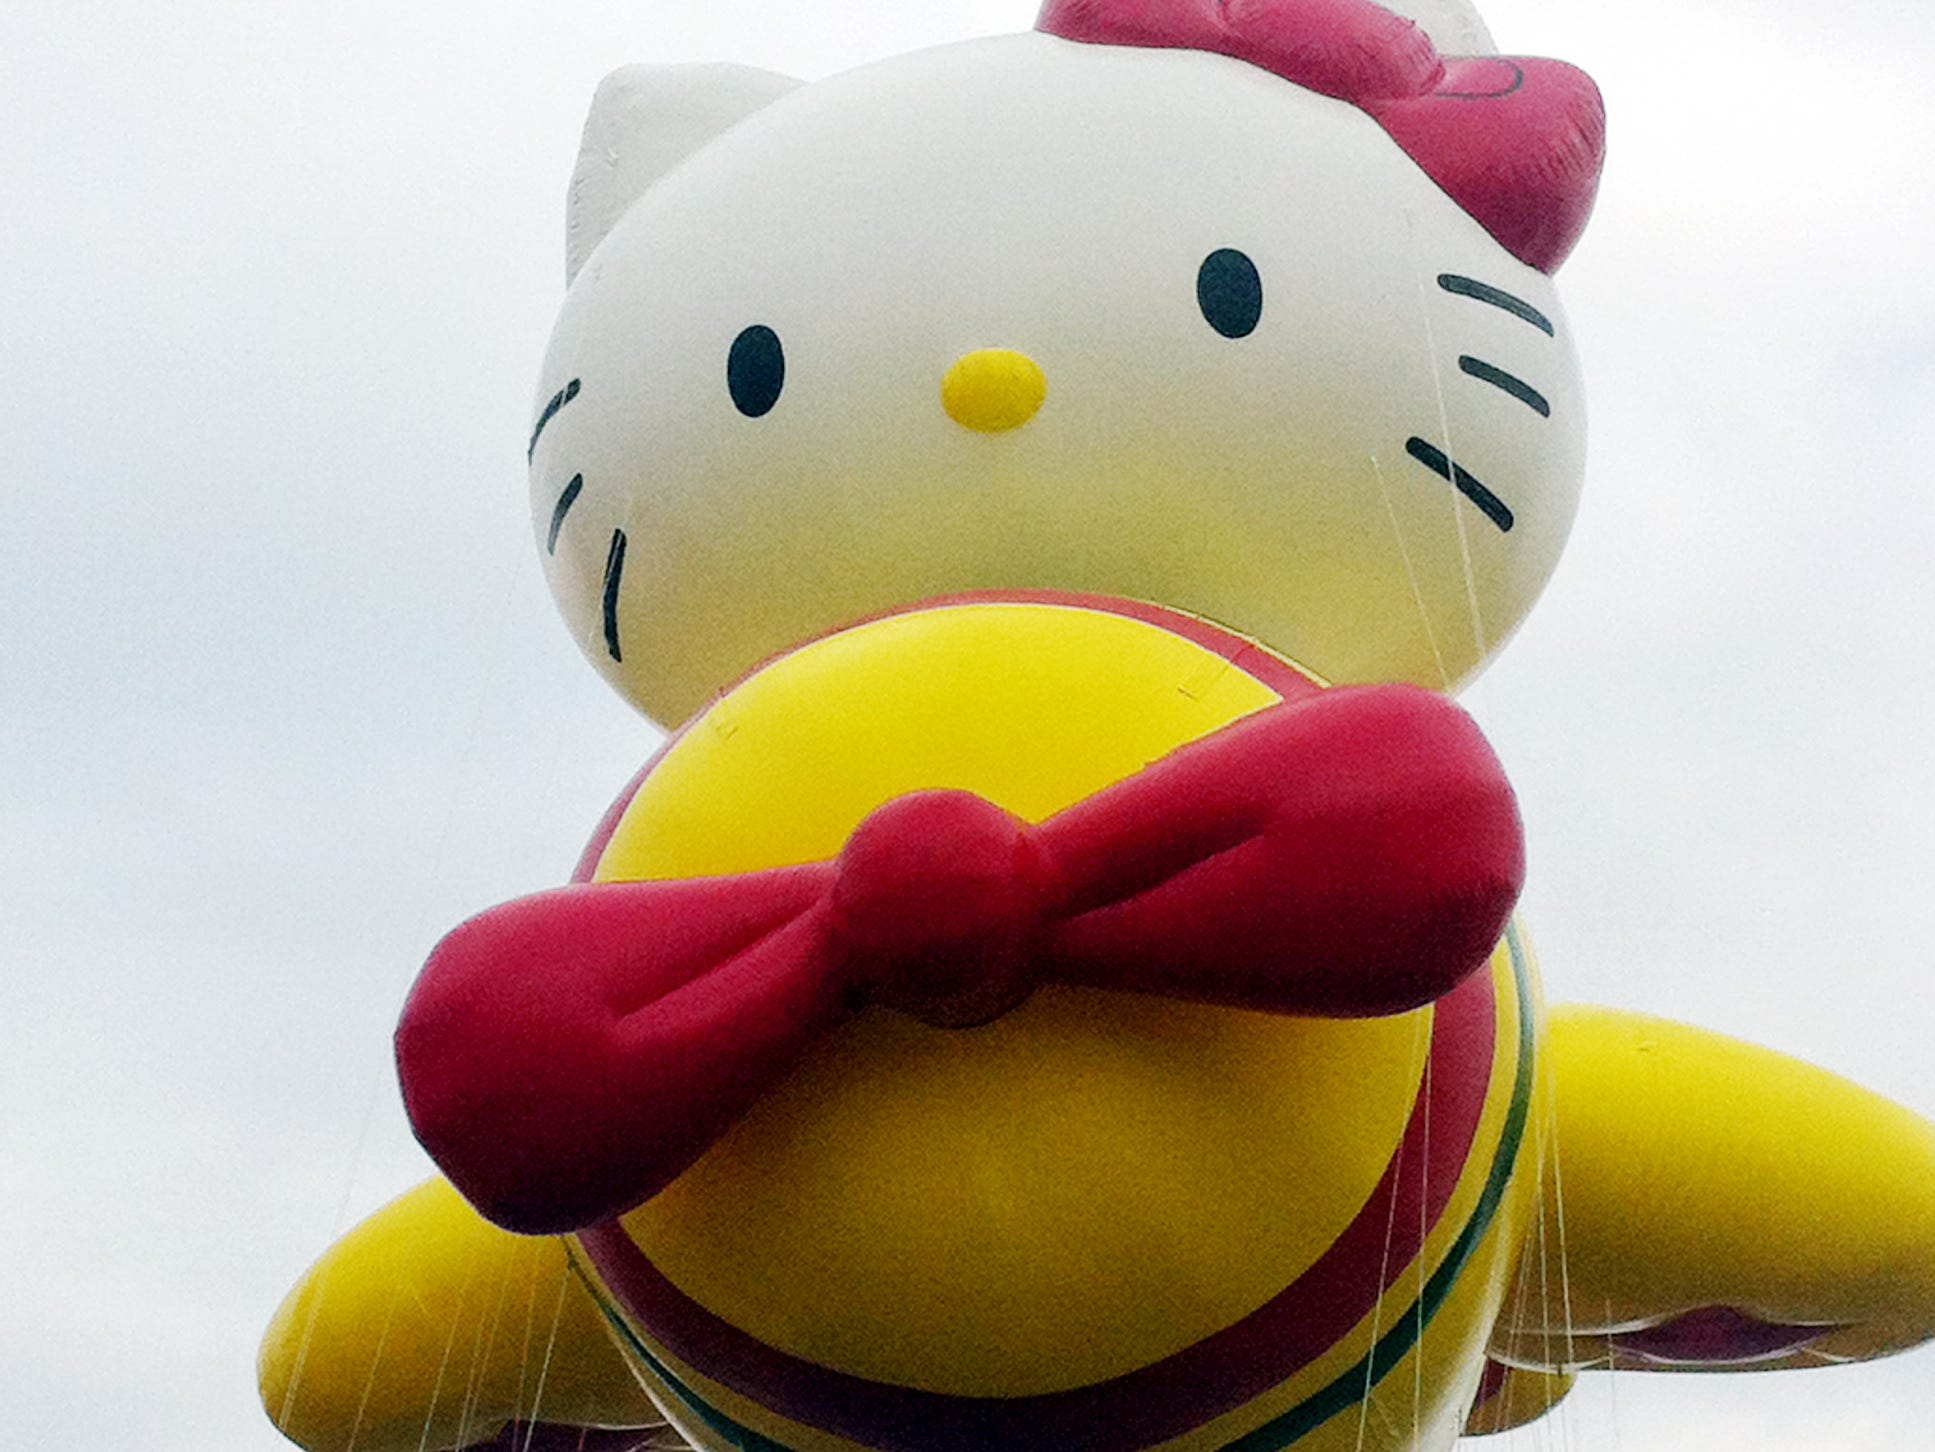 """The Hello Kitty balloon floats over the Meadowland?s race track during a Nov. 10 test flight in East Rutherford, N.J. Hello Kitty is one of three new balloons to be featured in the 2012 Macy?s Thanksgiving Parade. Macy?s/AP FILE - In this Nov. 10, 2012 file photo provided by Macy's, the """"Hello Kitty"""" balloon floats over the Meadowland's race track during a test flight in East Rutherford, N.J. """"Hello Kitty"""" is one of three new balloons to be featured in the 2012 Macy's Thanksgiving Parade. (AP Photo/Macy's, Inc.)"""